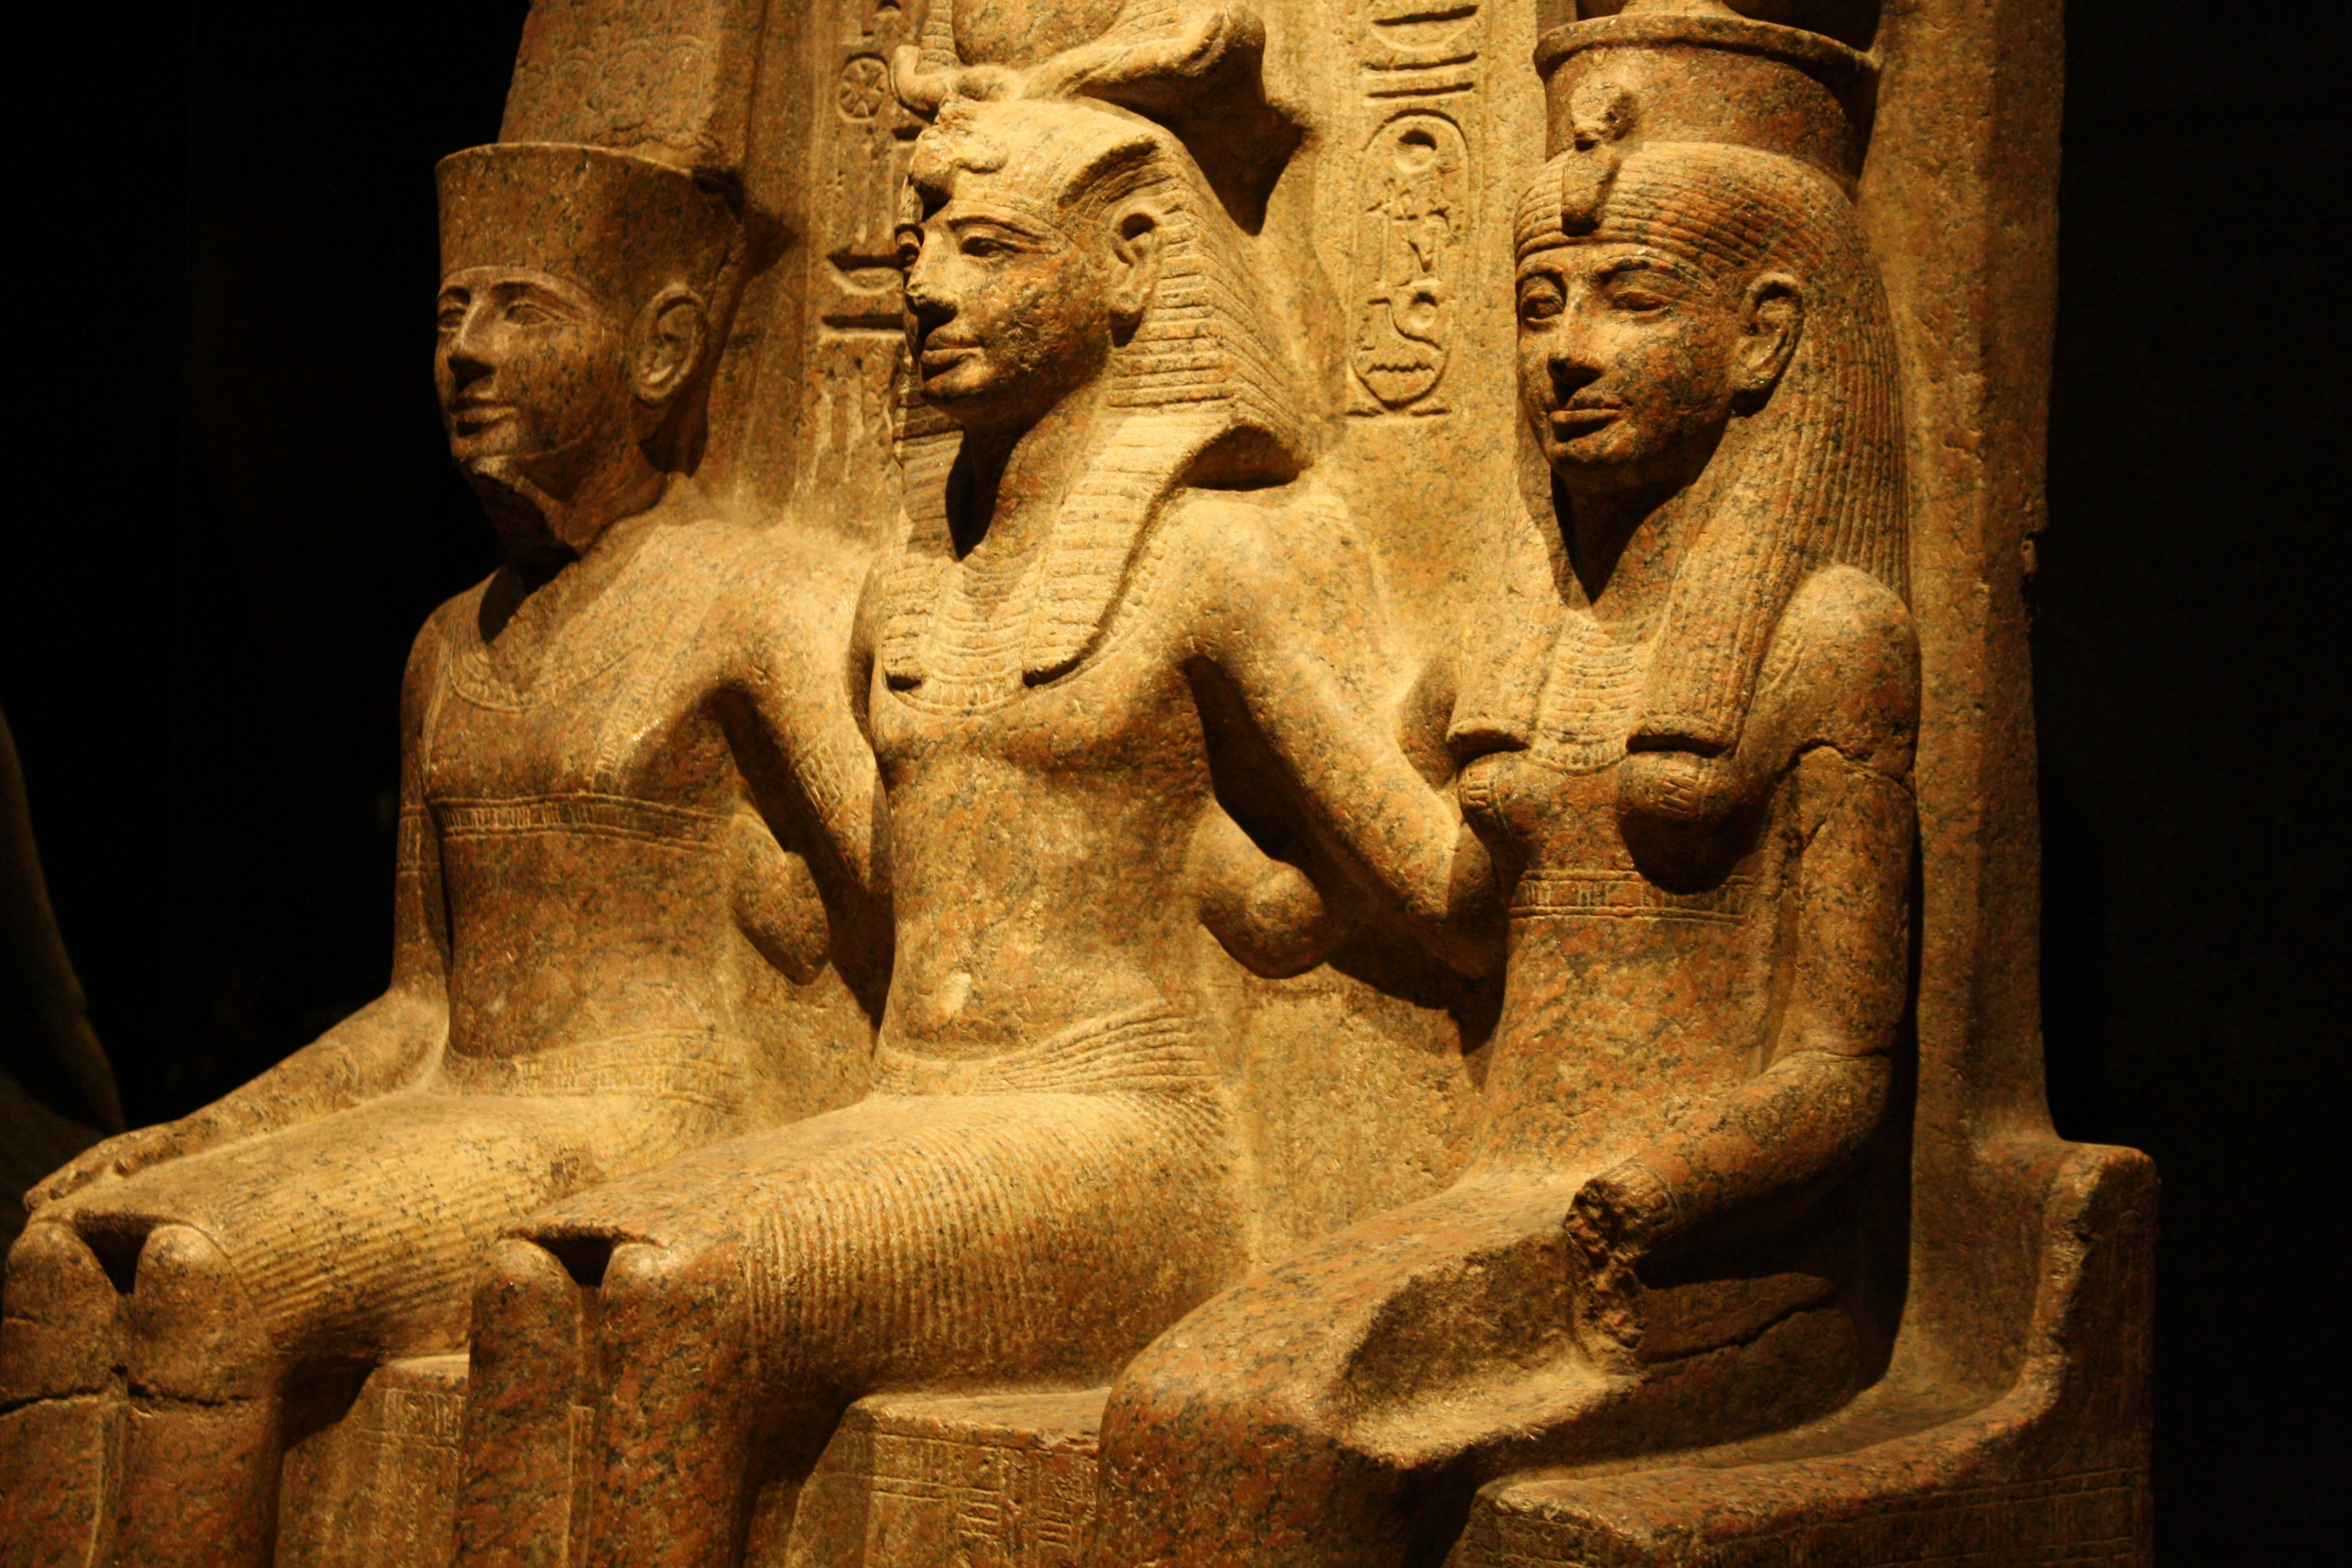 hatshepsut vs ramses ii Both ramses ii and queen hatshepsut left a lasting legacy in ancient egypt, but who was the better le ramses vs hatshepsut - rank the leaders of ancient egypt and cover ela and social studies standards grade 6, 5 days, interactive, $.